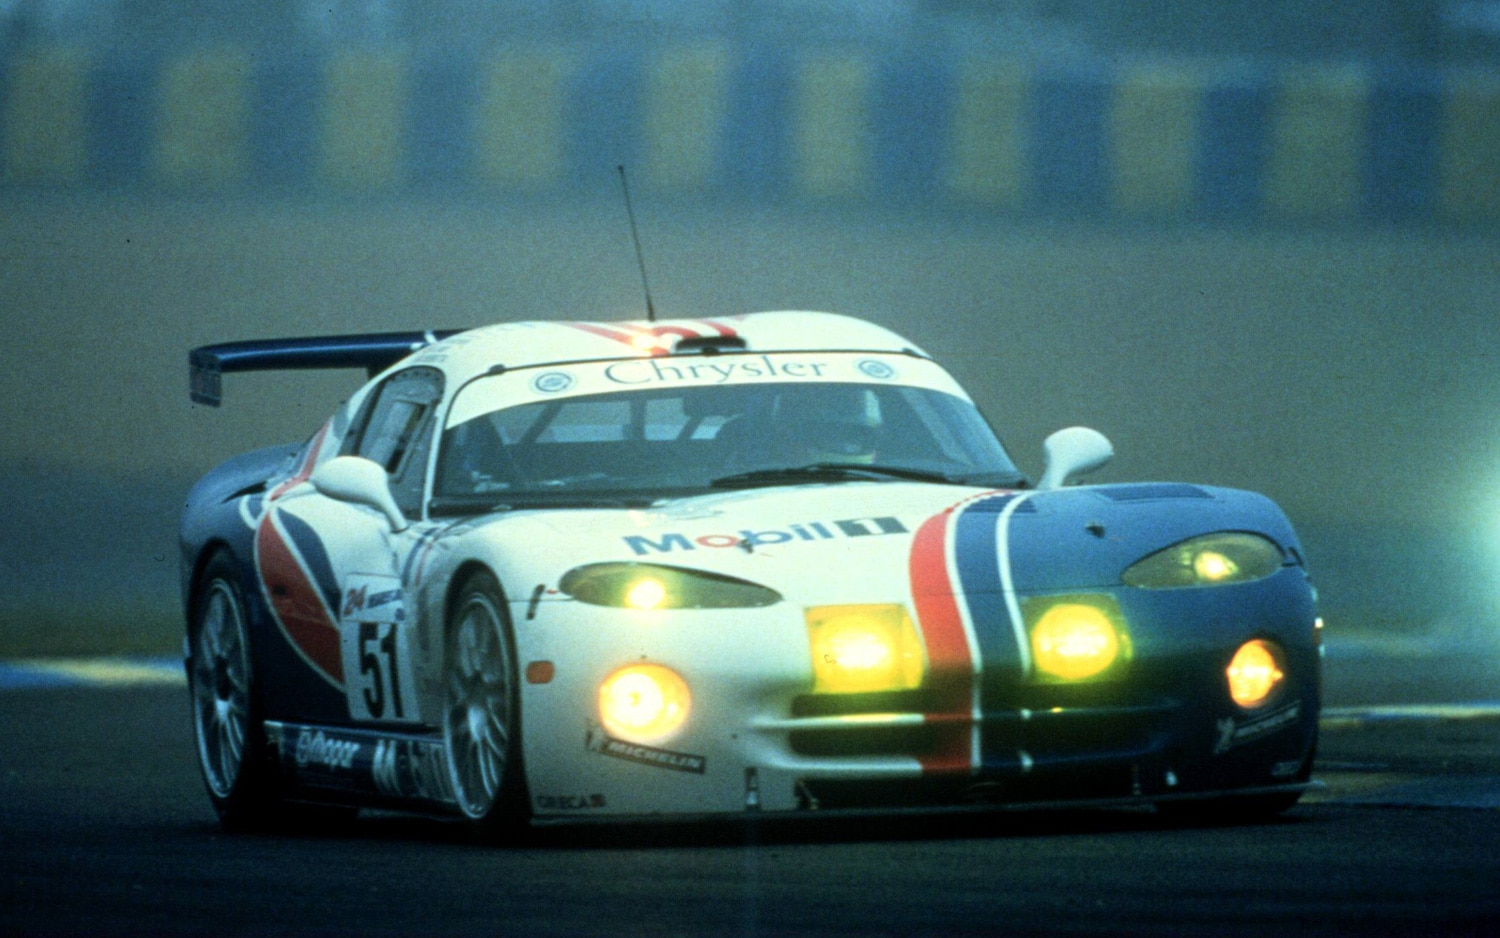 2013 Srt Viper Gts R The Latest Chapter In Viper Racing